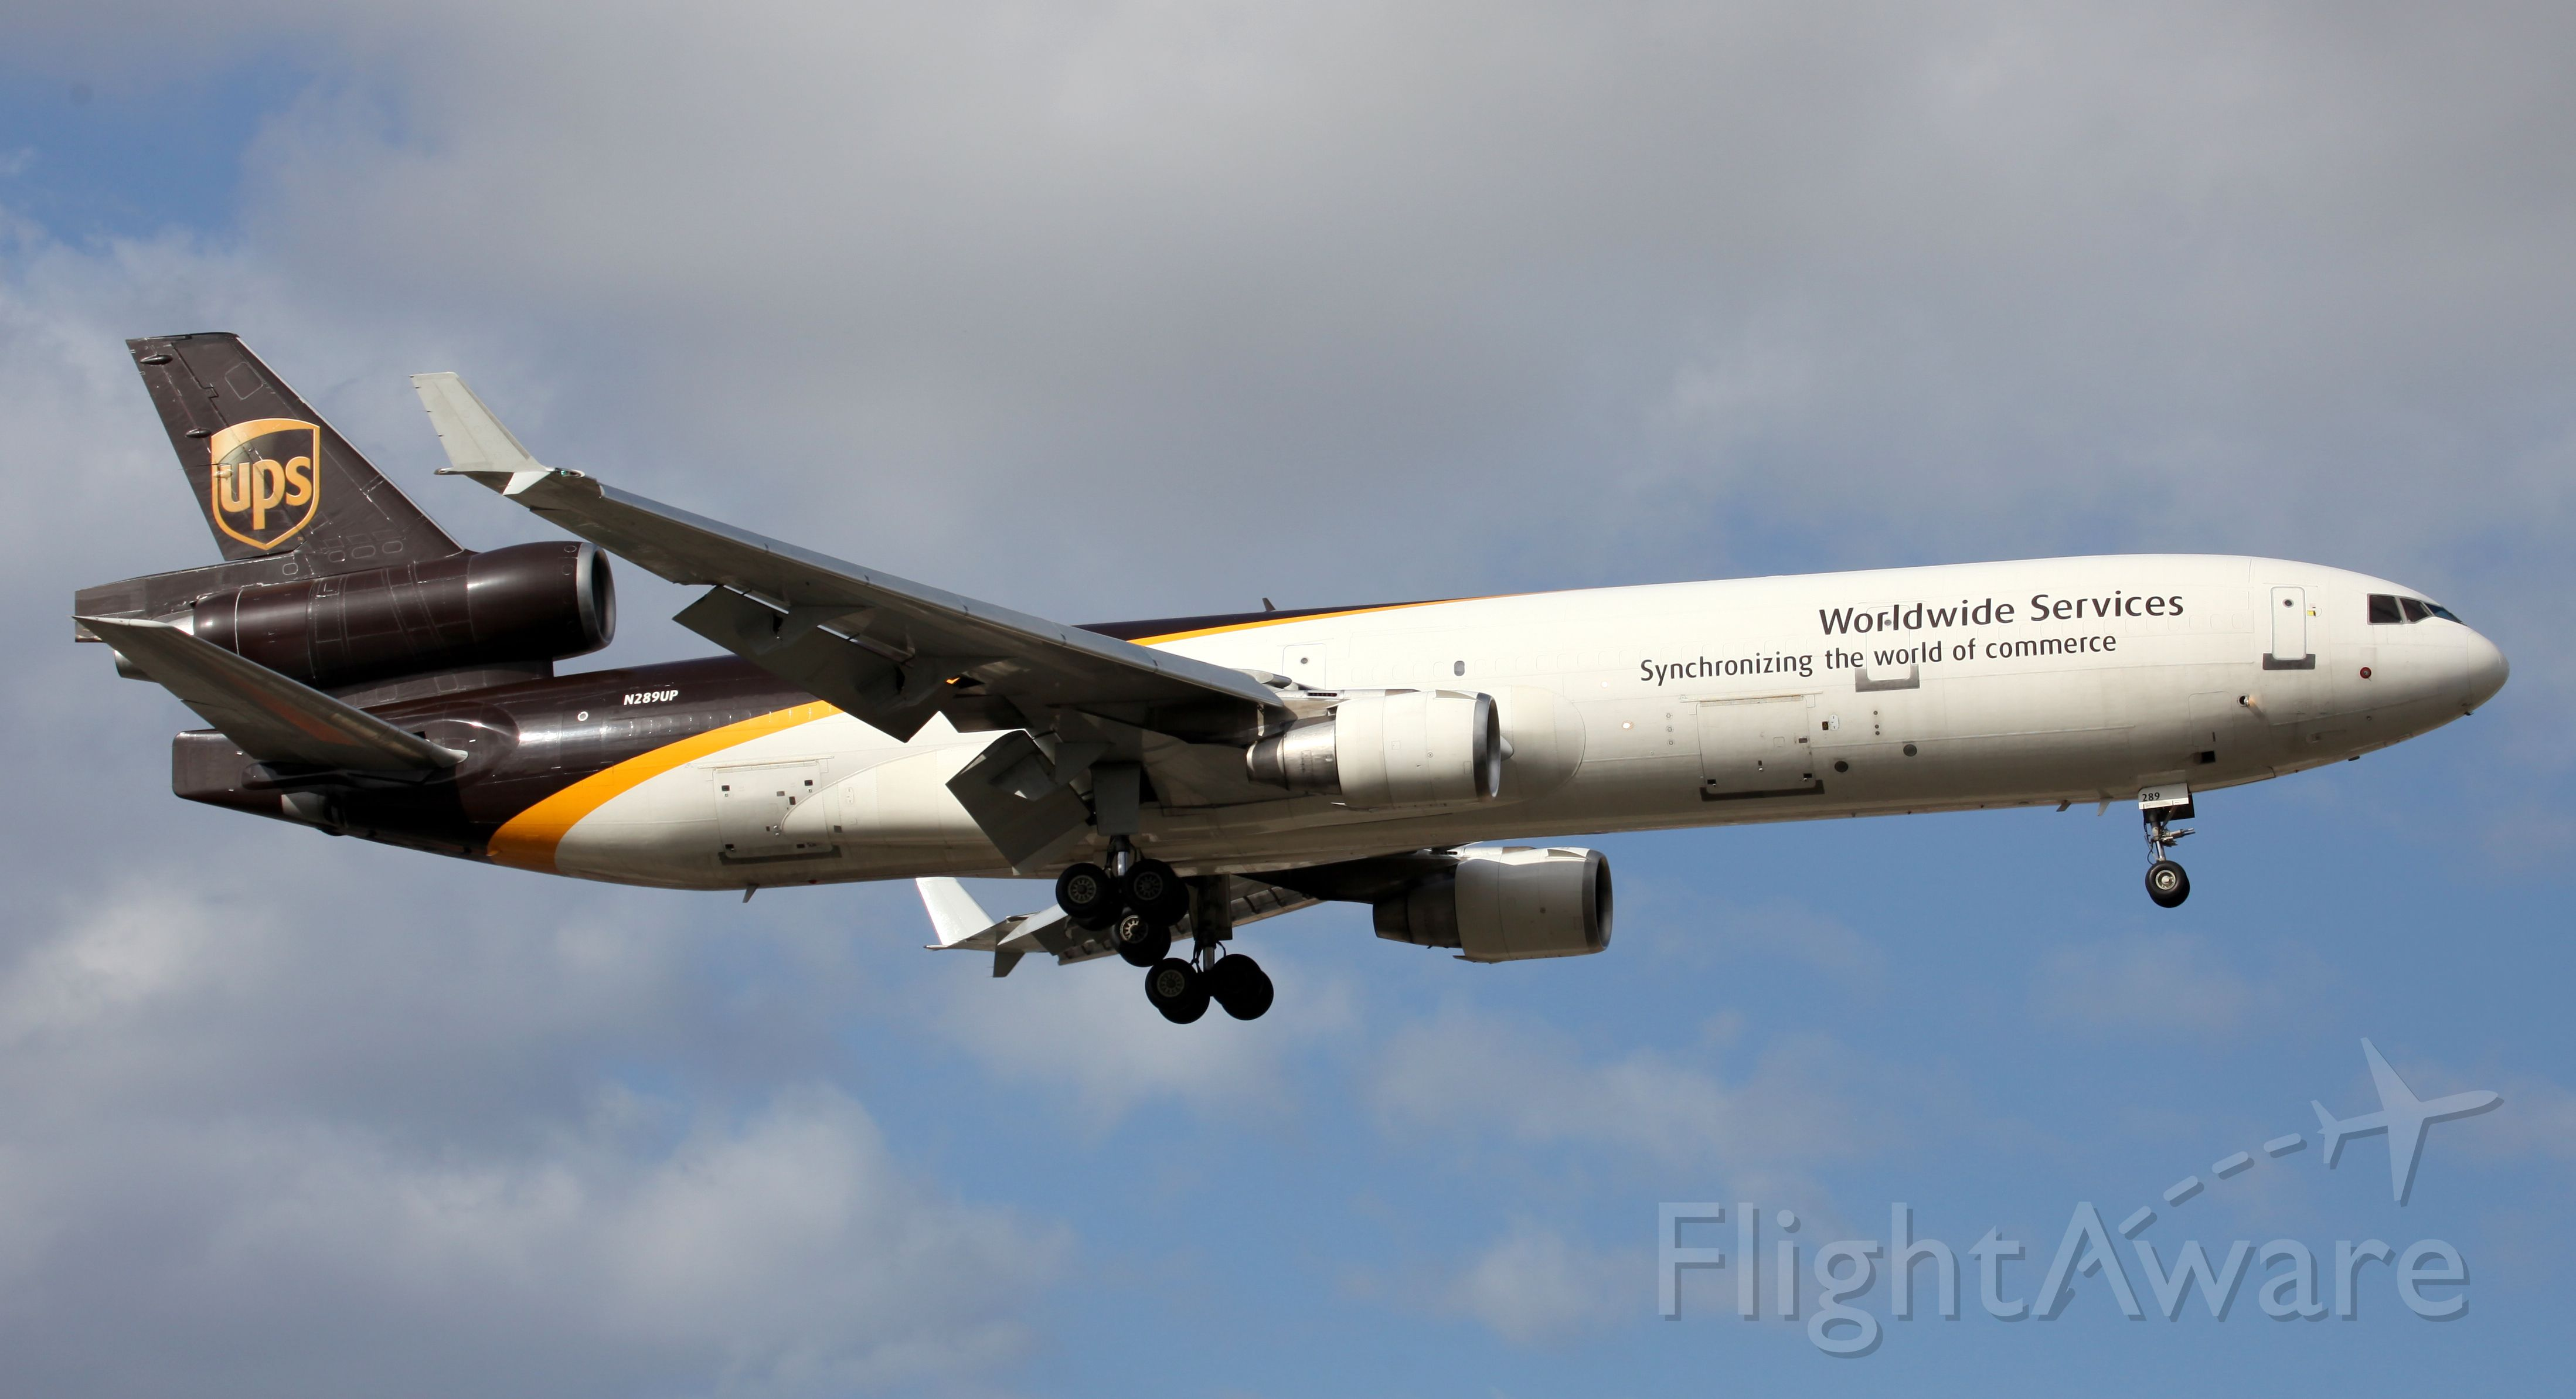 Boeing MD-11 (N289UP) - On Final To Rwy 16R